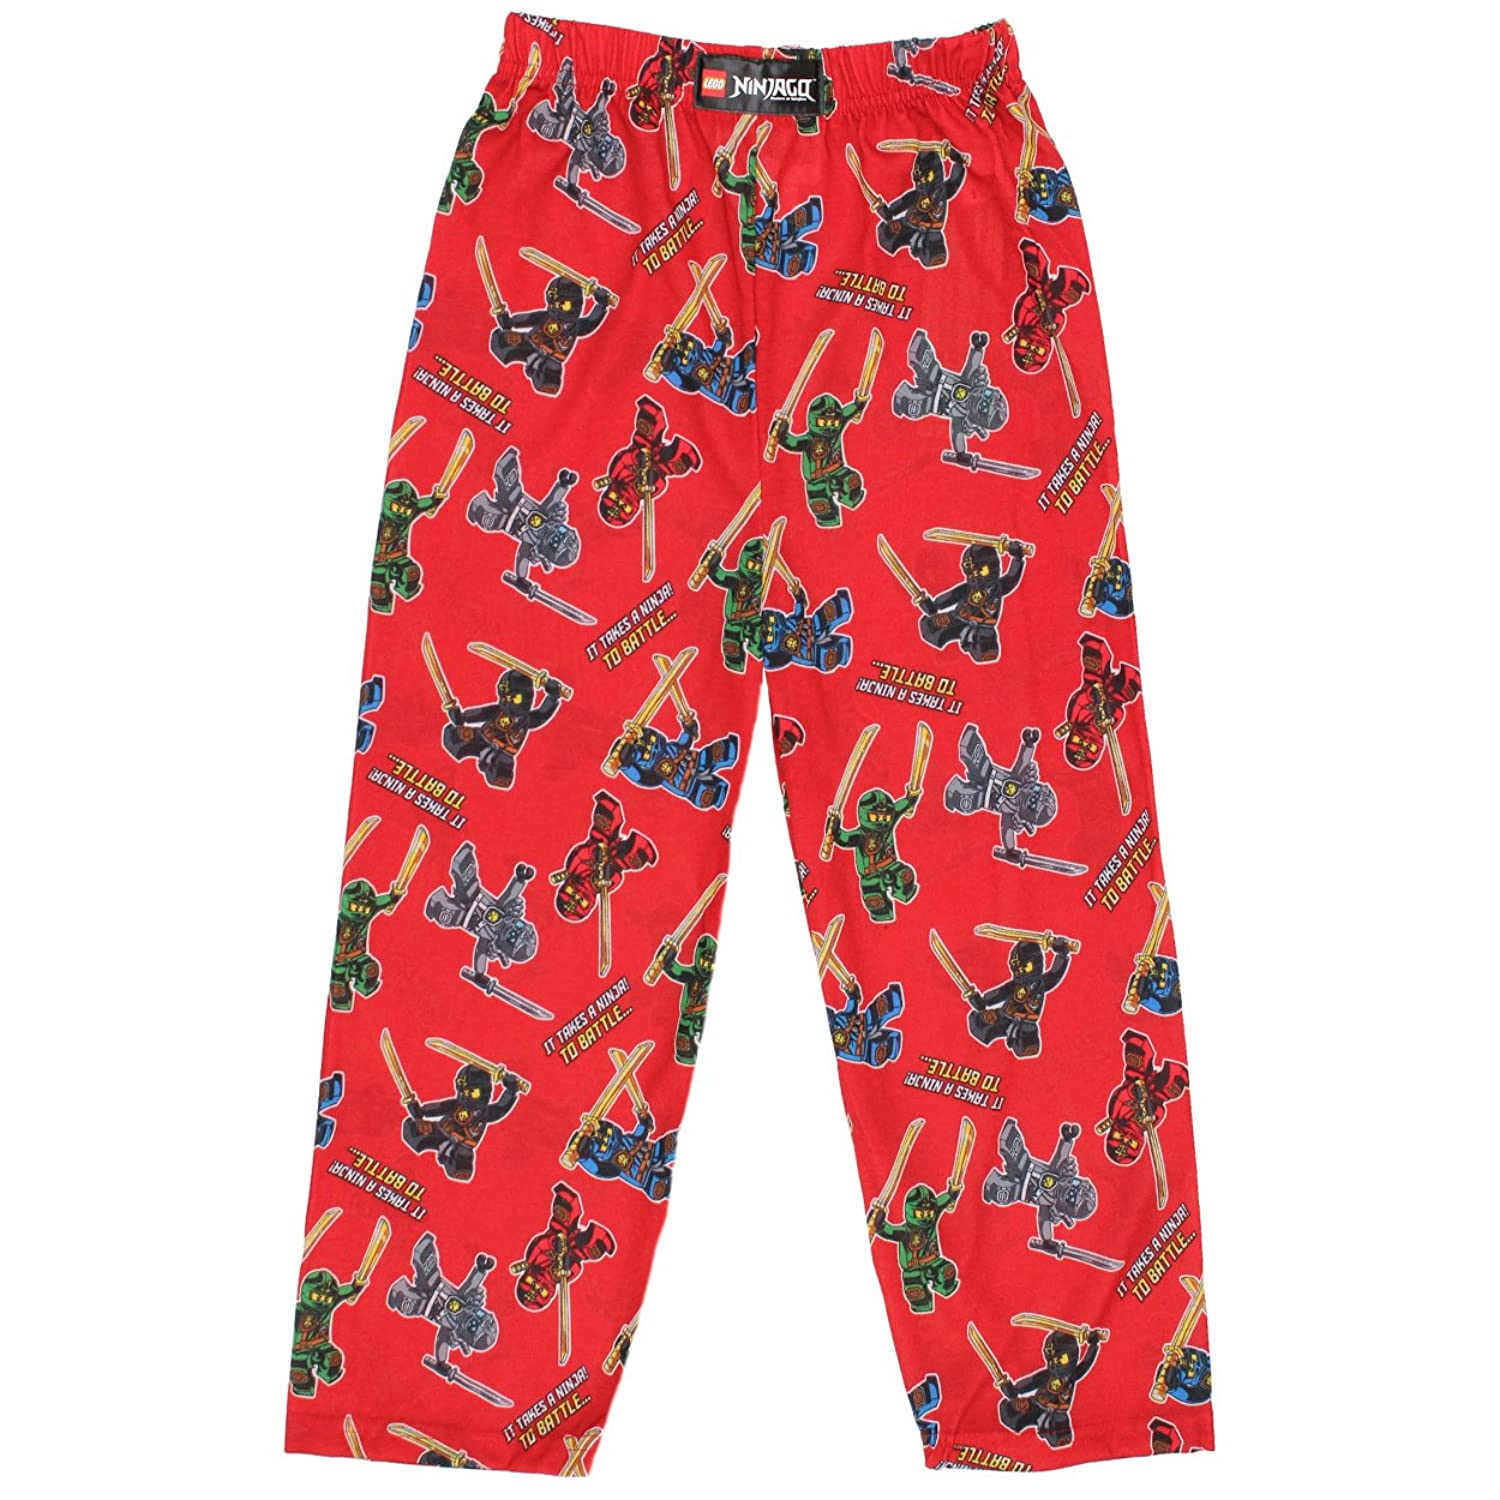 Boy's Pajama Bottoms | Amazon.com